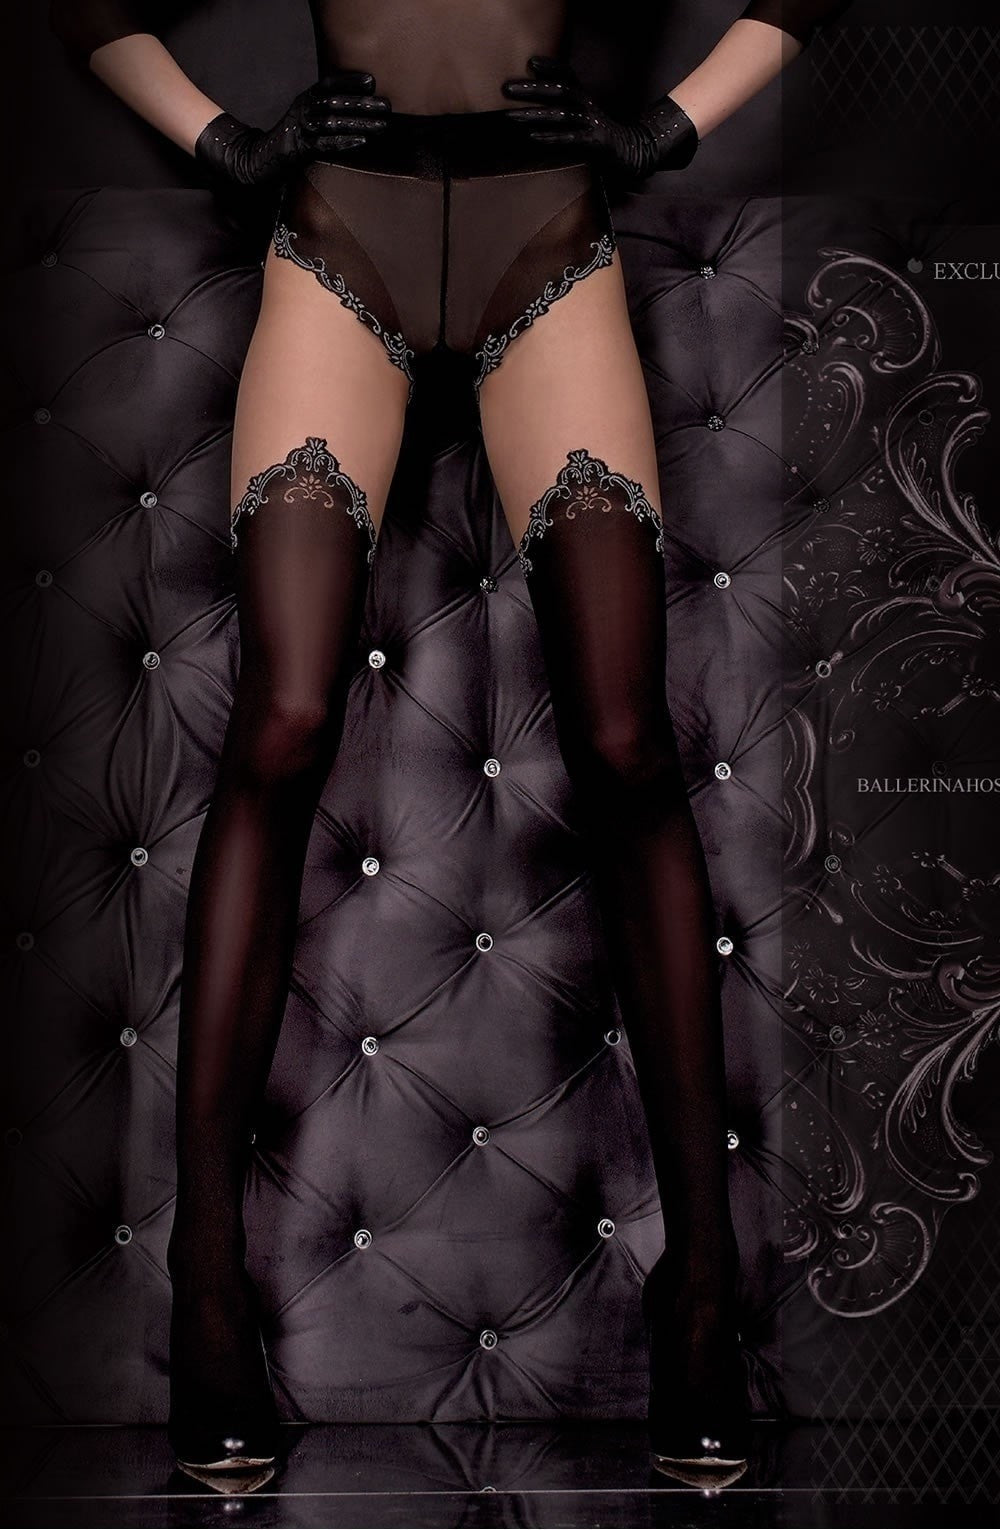 Ballerina Tights 305 (Black/Skin) - Tights - Ballerina - Charm and Lace Boutique